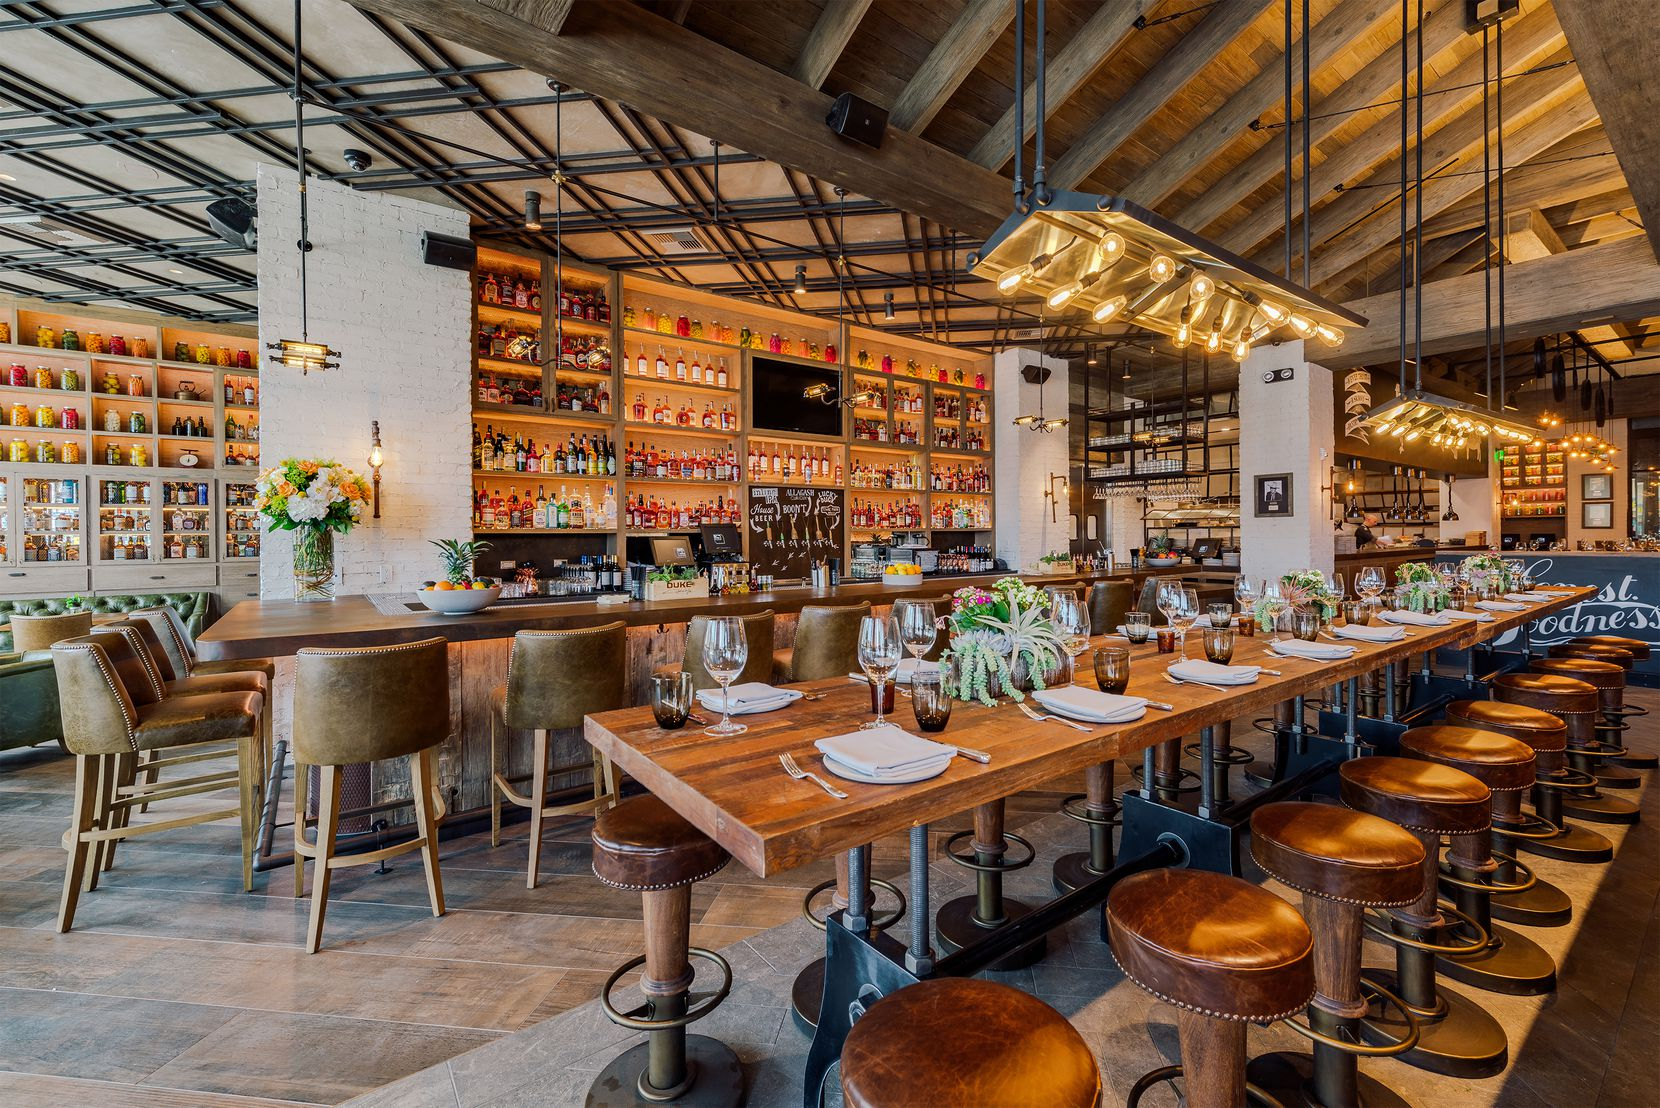 Yardbird Southern Table & Bar opened in Miami in 2011 and now has locations Las Vegas, Miami Beach, Los Angeles and Singapore.